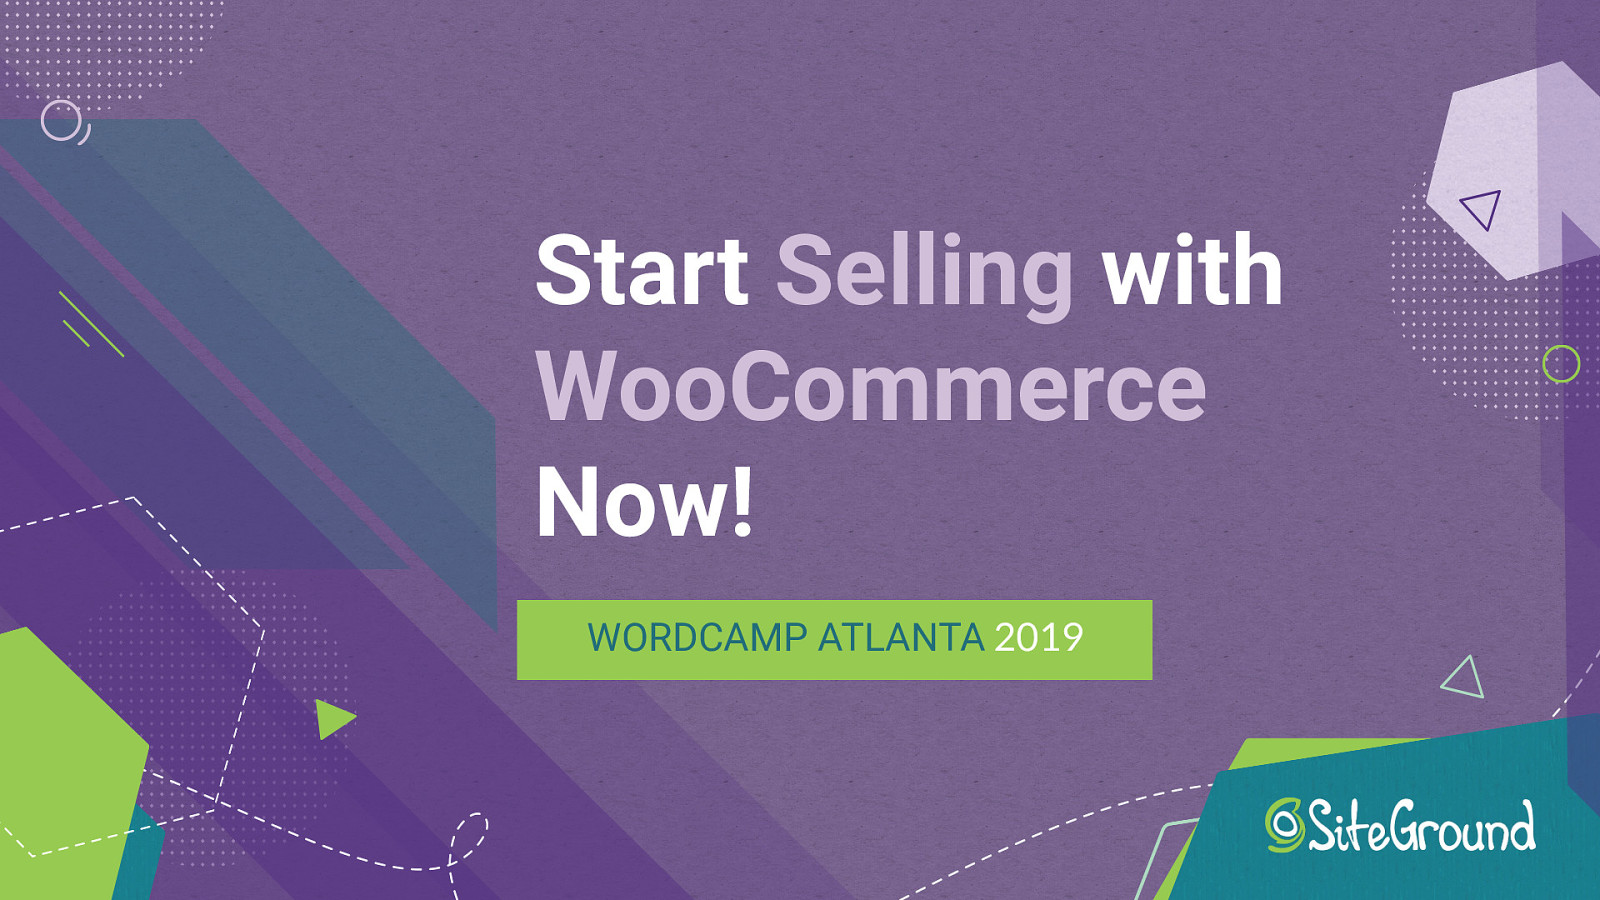 Start Selling With WooCommerce Now!